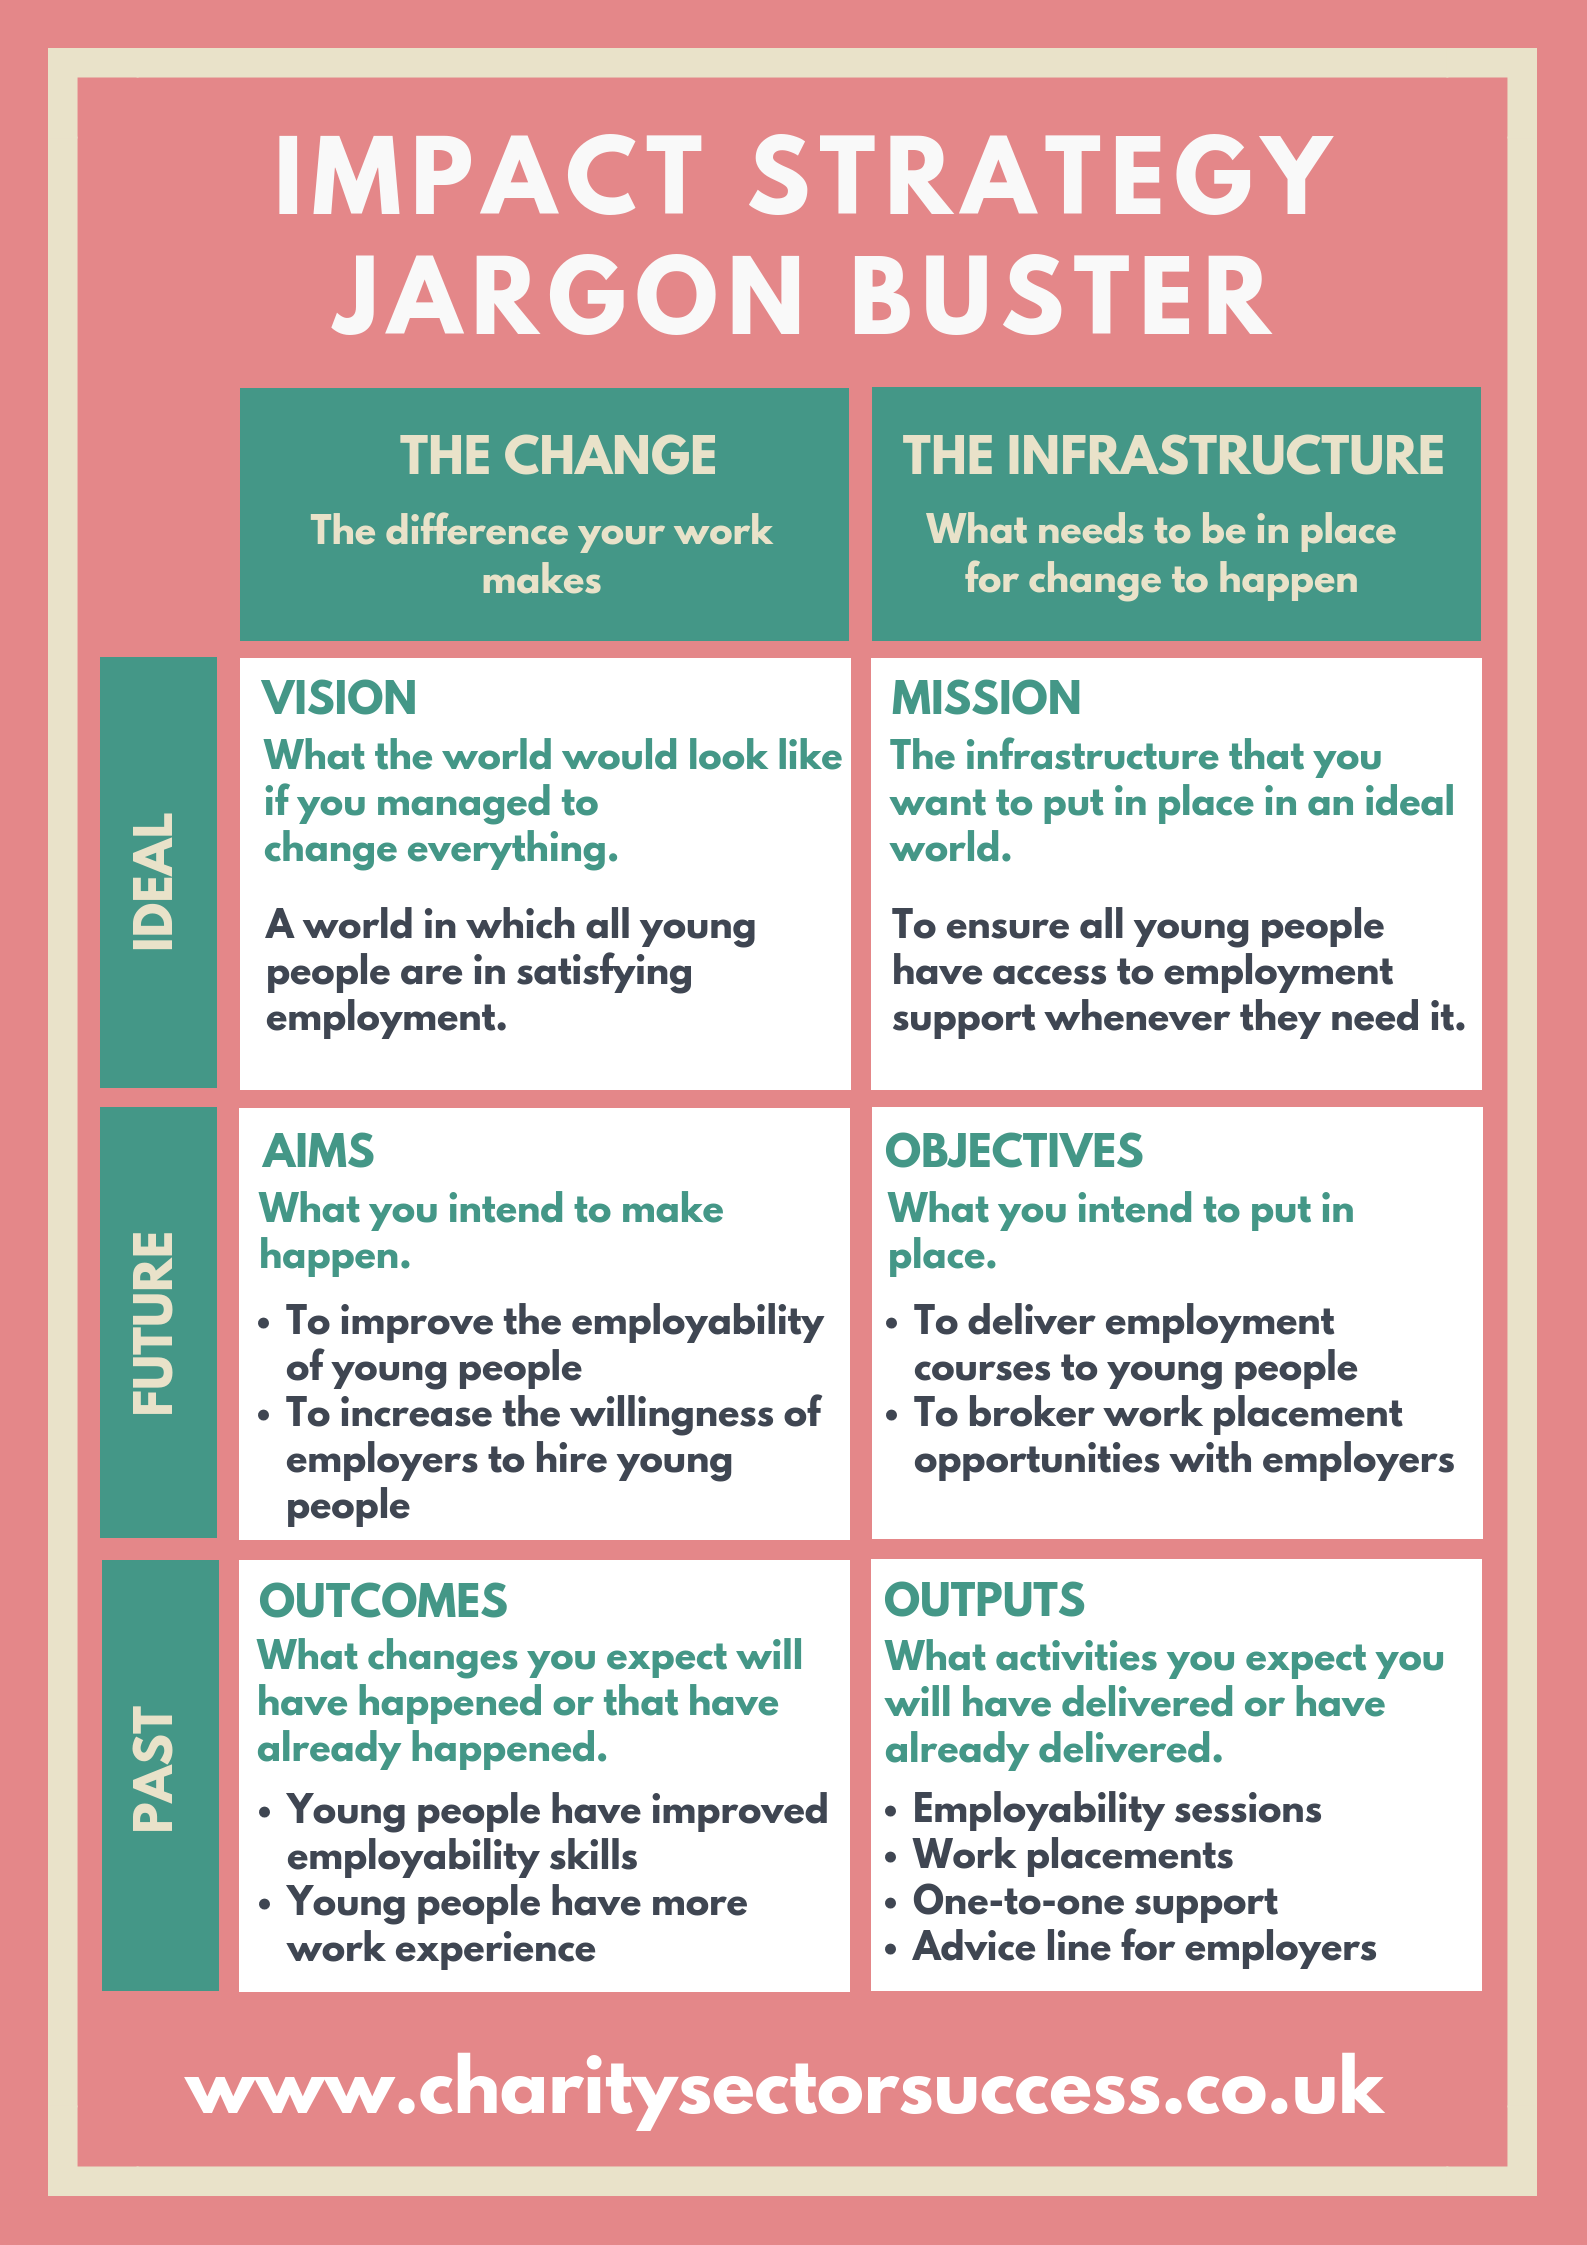 Impact Strategy Jargon Buster